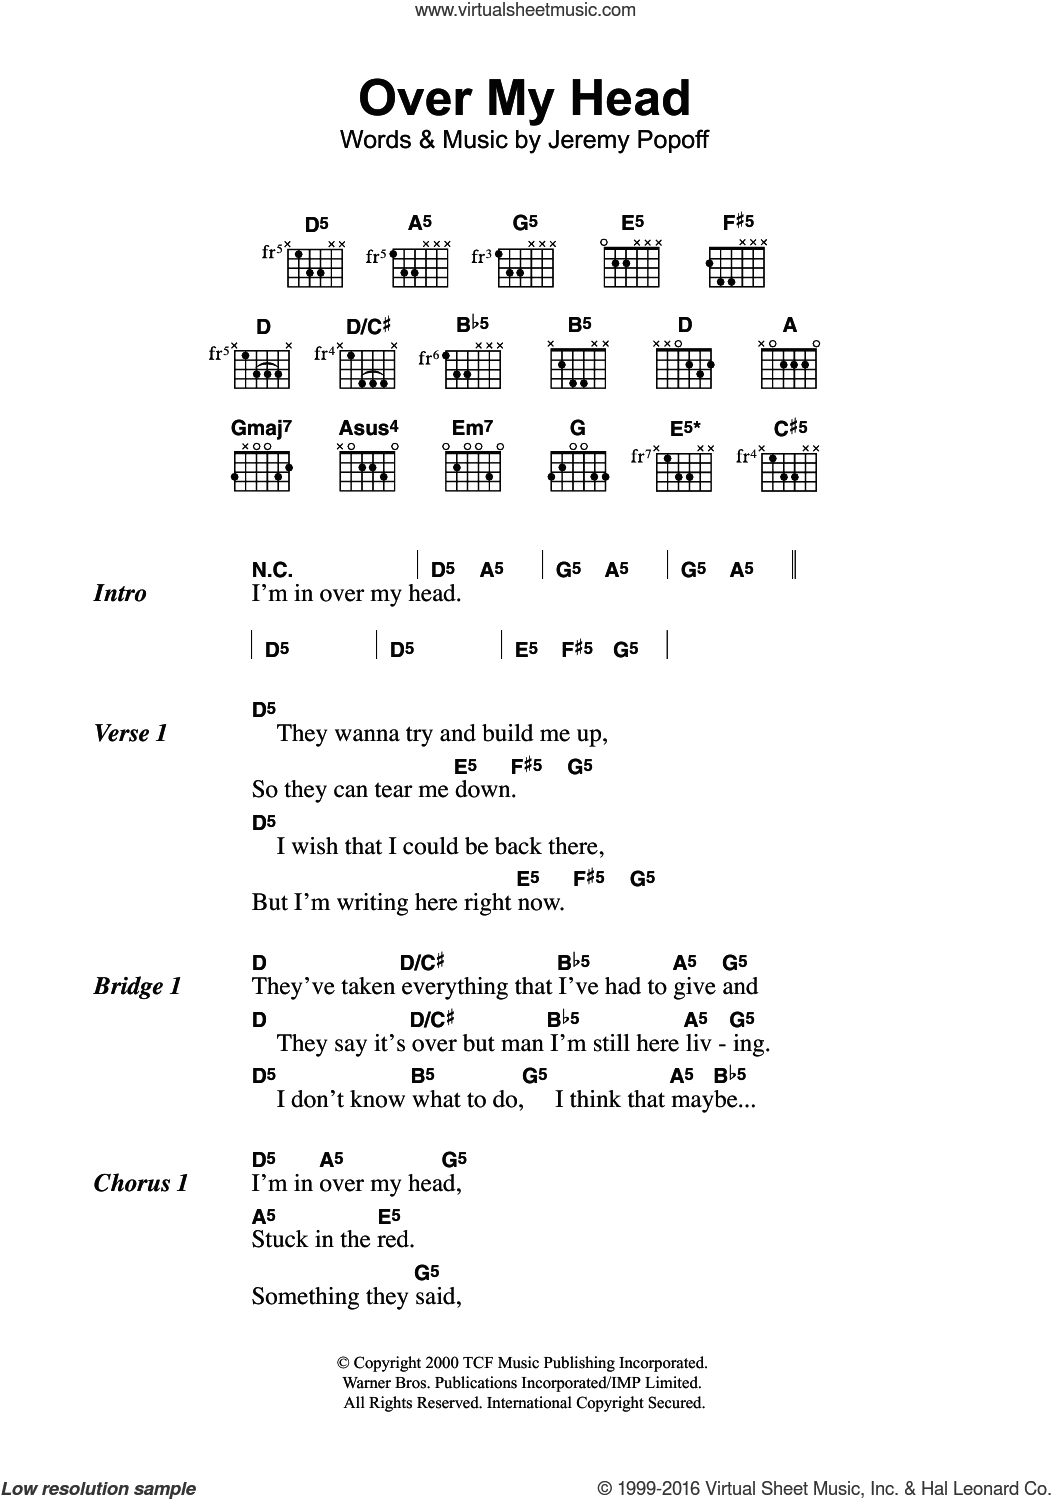 Over My Head sheet music for guitar (chords) by Lit and Jeremy Popoff, intermediate